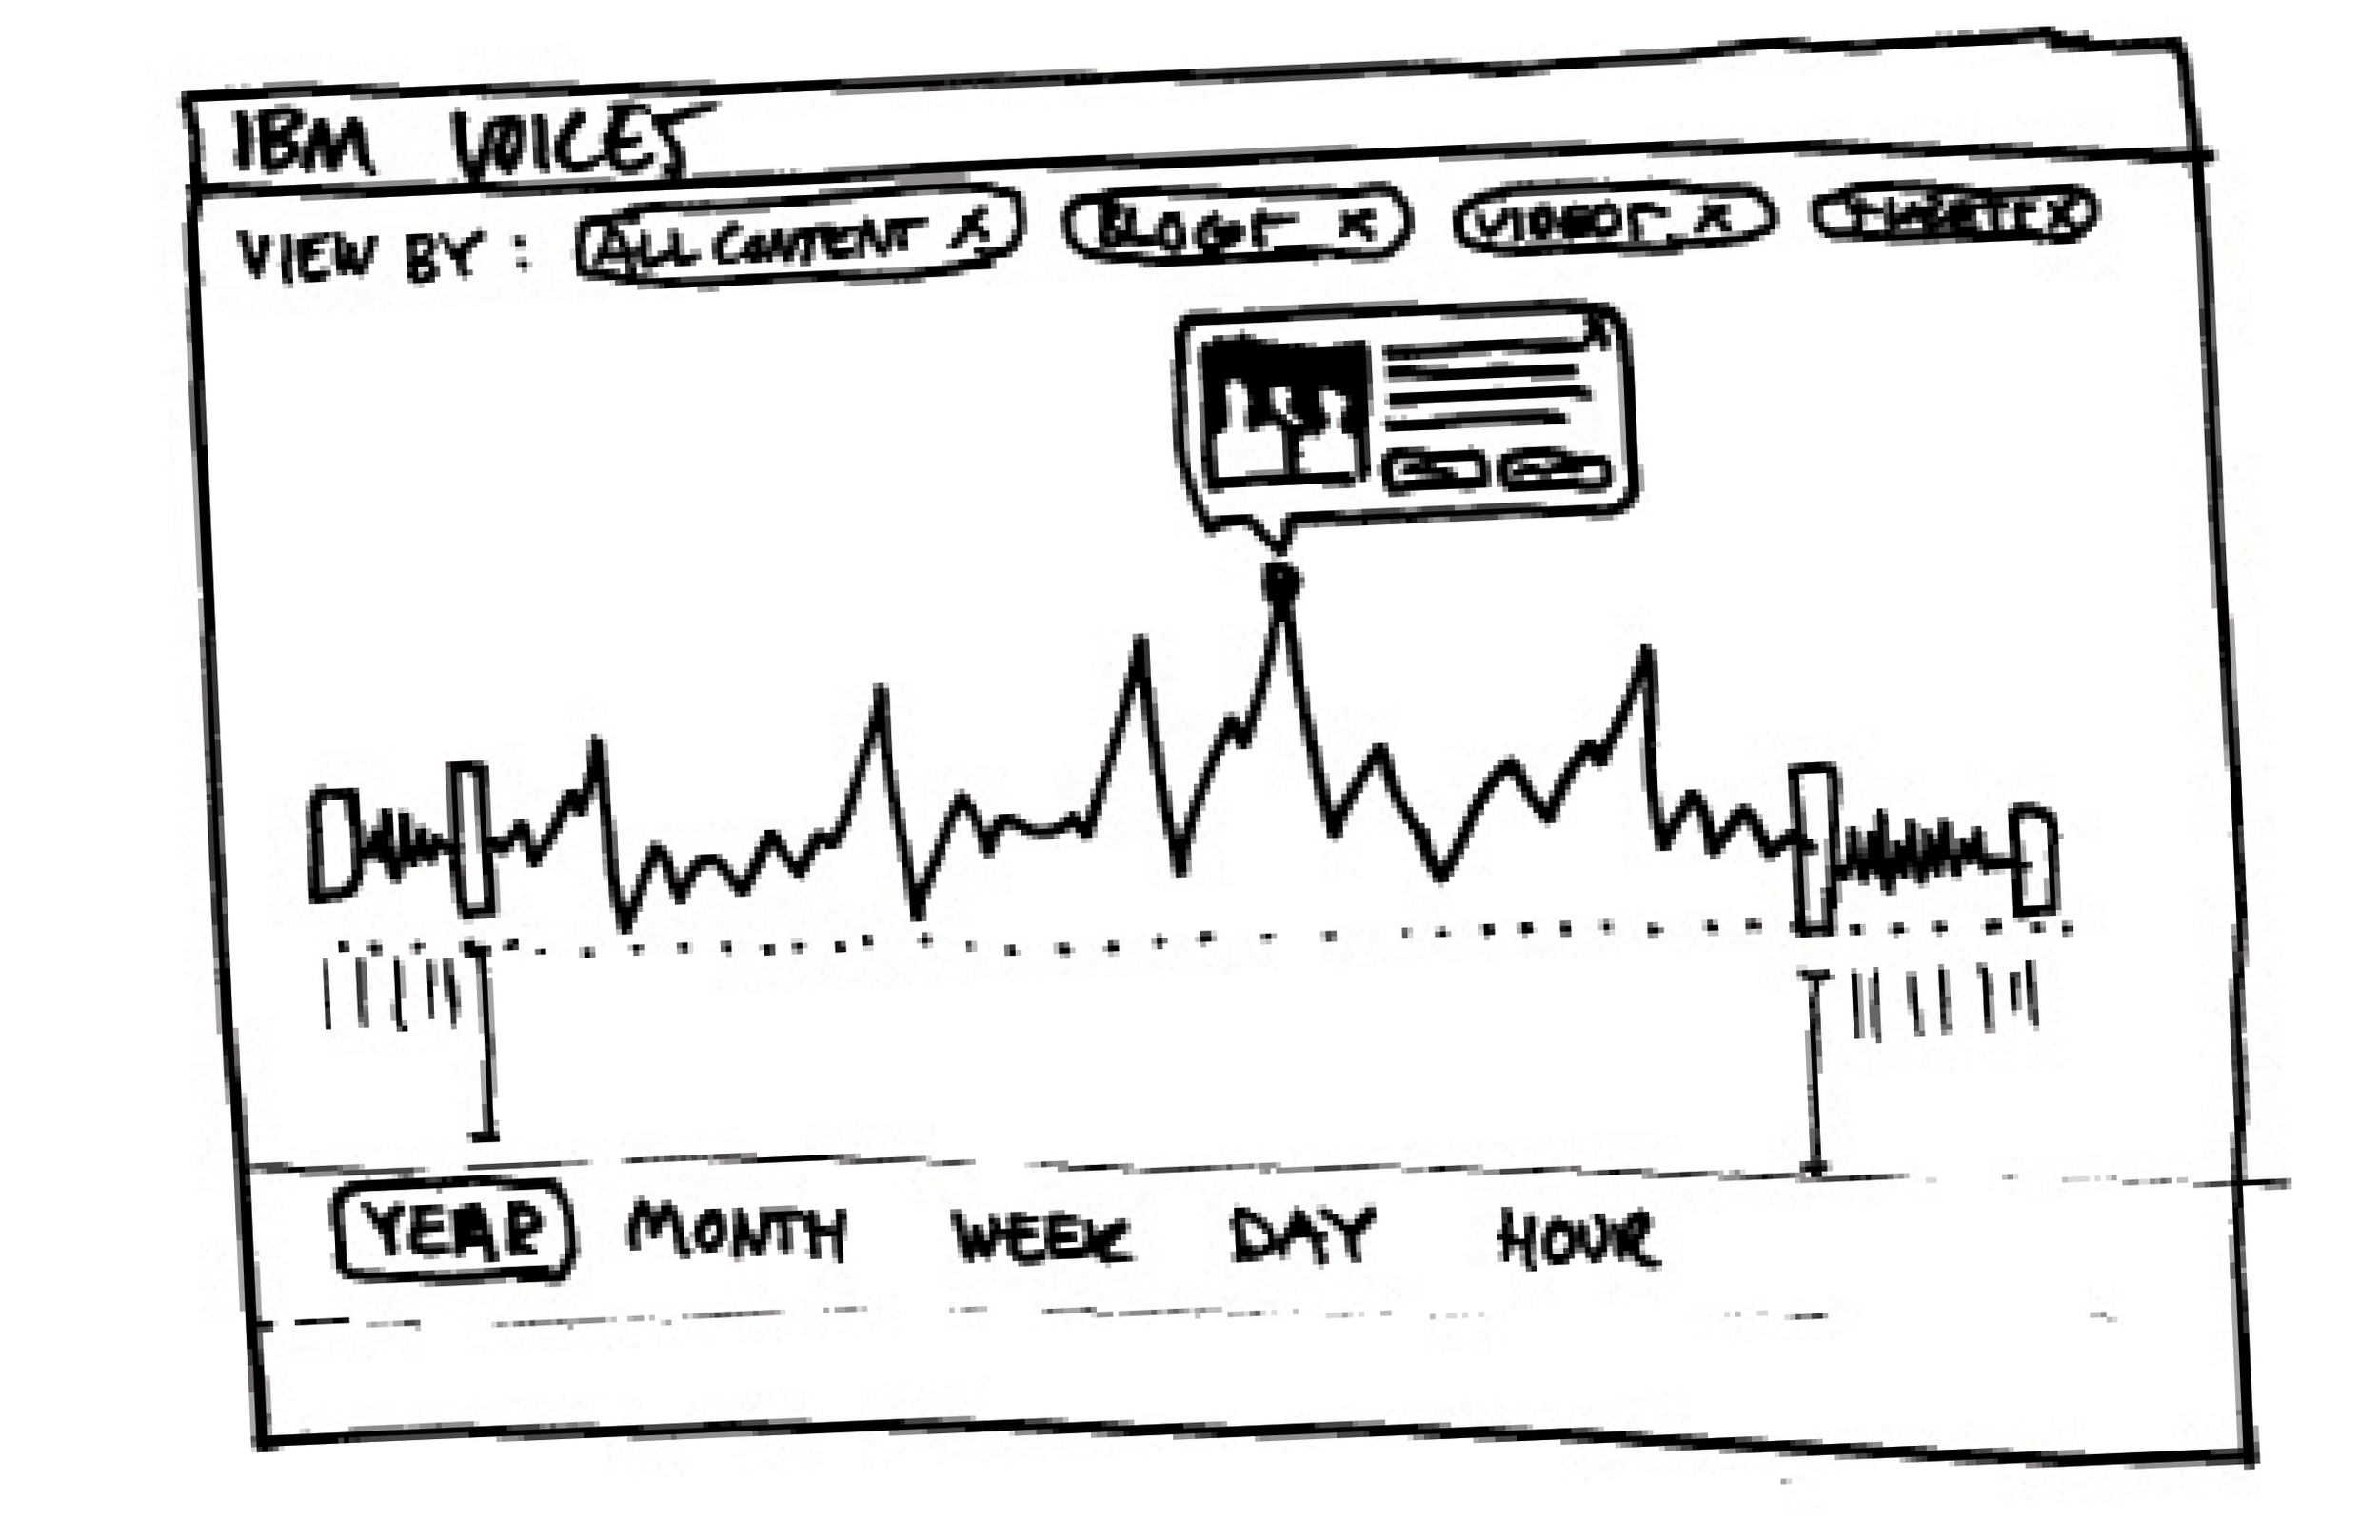 Initial sketch for At a Glance view